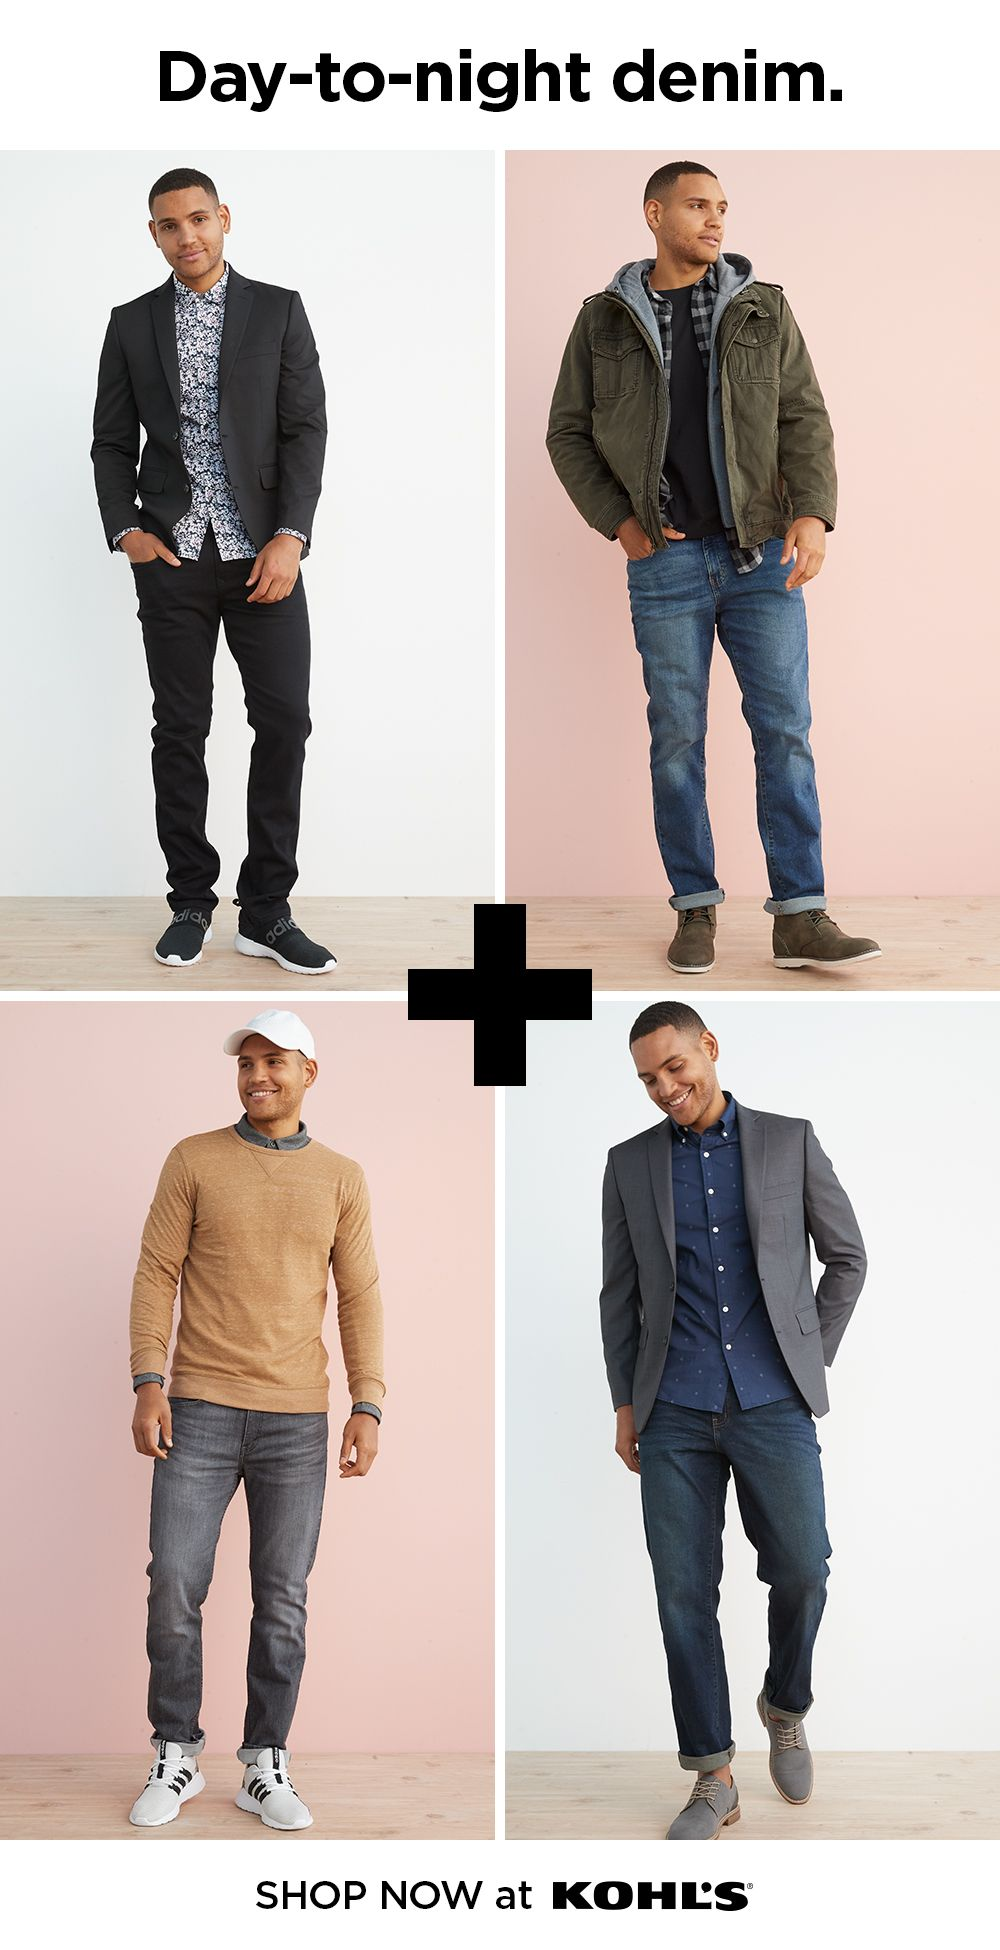 Find Jeans For Guys At Kohl S A Good Pair Of Everyday Jeans Are Are An Essential Part Of Every Guy S W Mens Fashion Fall Casual Mens Outfits Mens Fashion Fall [ 1950 x 1000 Pixel ]